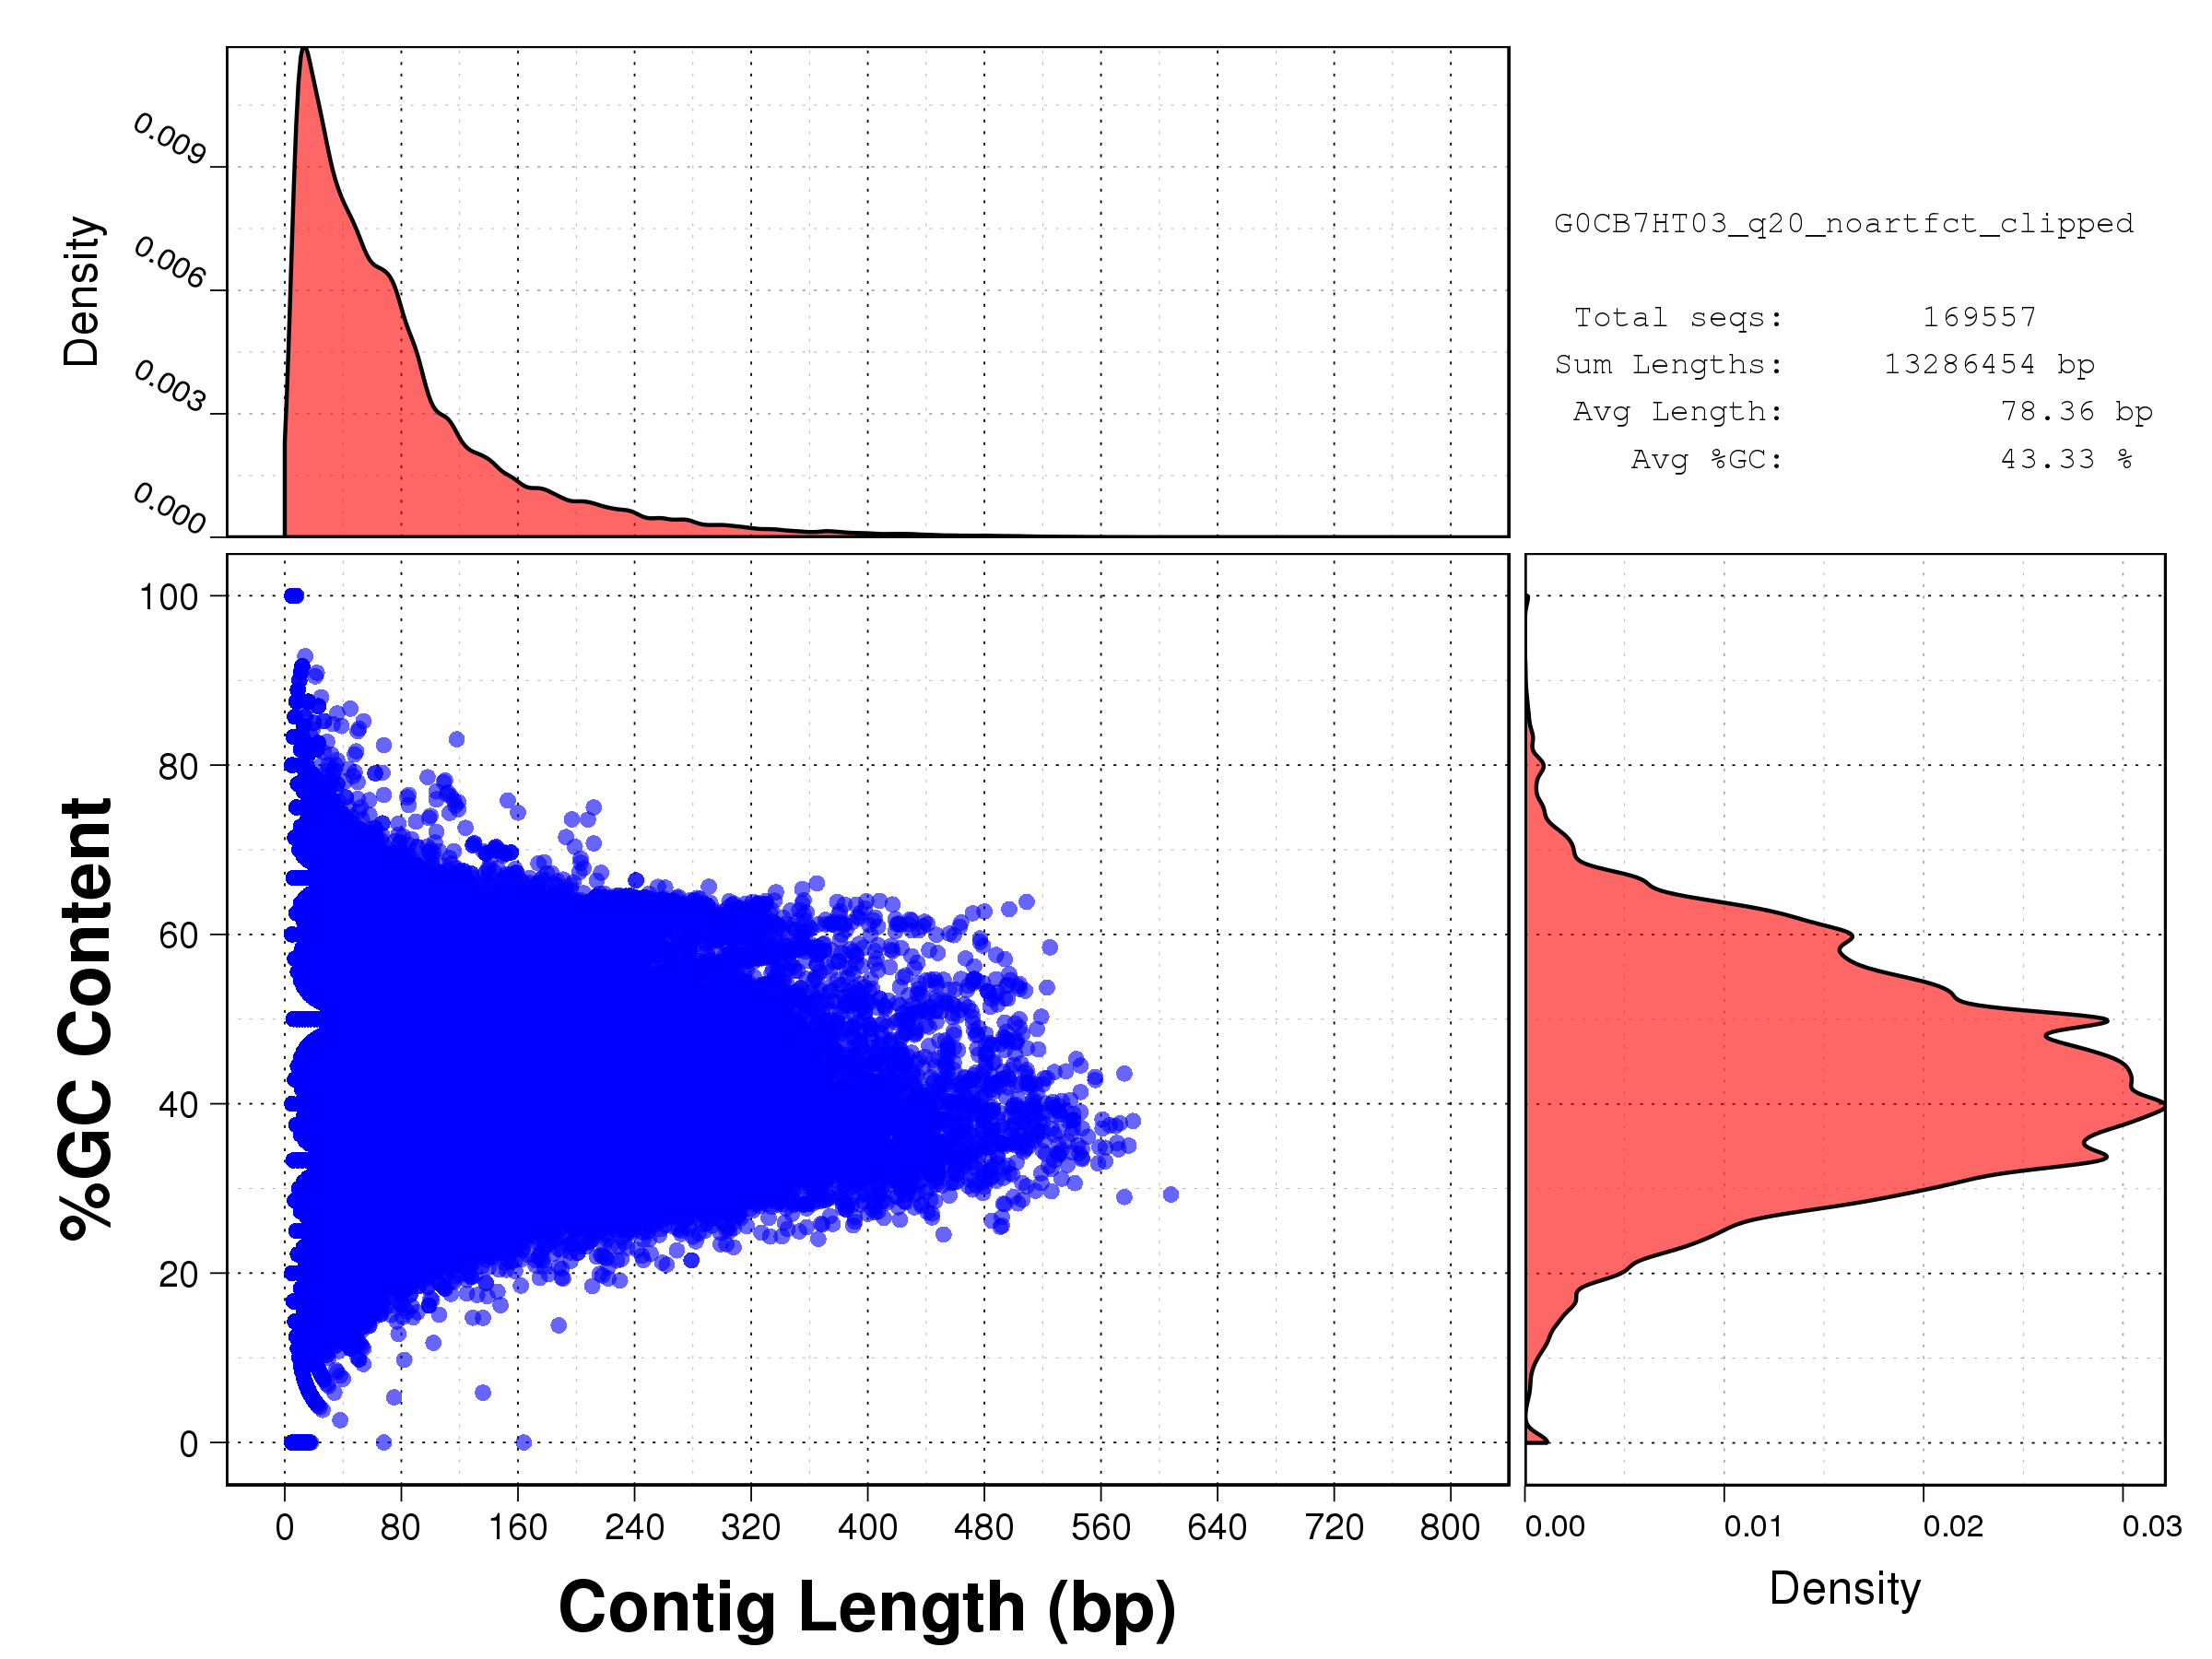 Length vs GC content plot for all starfish reads after Phred Q20 + artifact + adapter cleaning: G0CB7HT03.